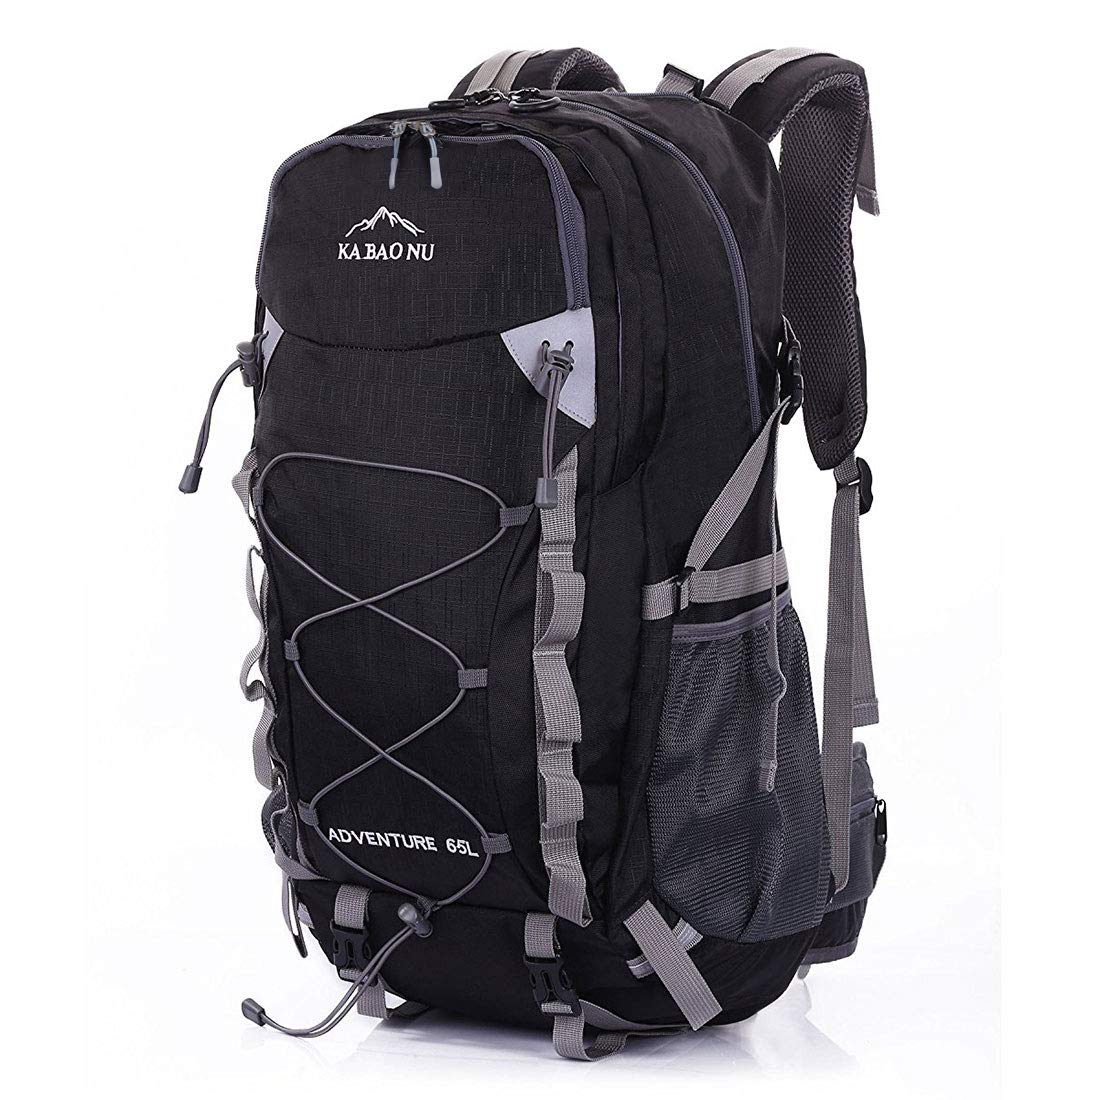 4ad4801e17 Amazon.com   Mooedcoe 65L Waterproof Hiking Daypack Outdoor Travel Camping  Backpack for Men (Black)   Sports   Outdoors